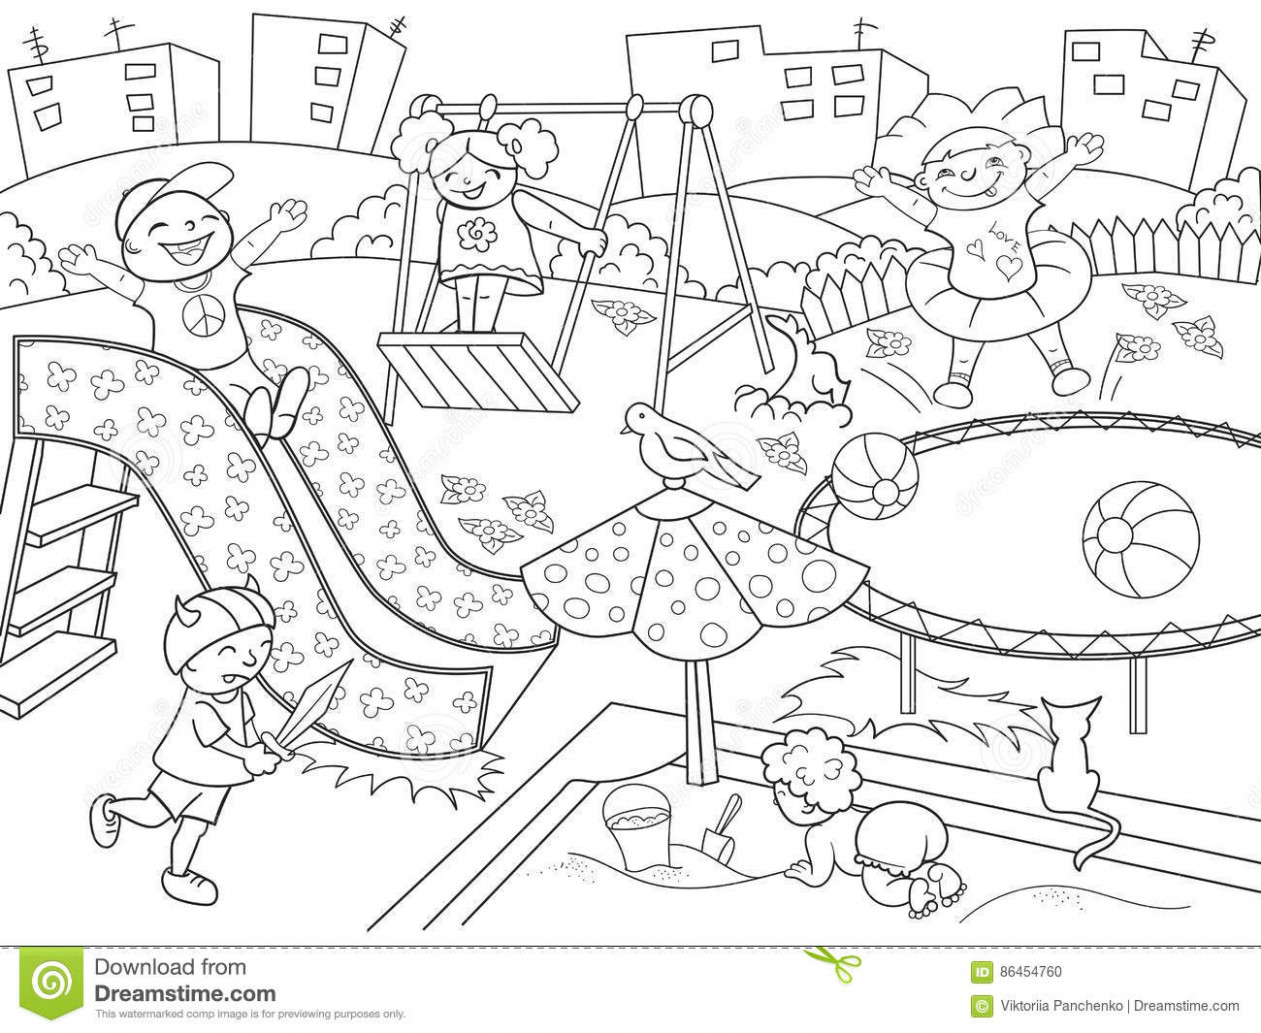 Children playing in the park clipart black and white 8.